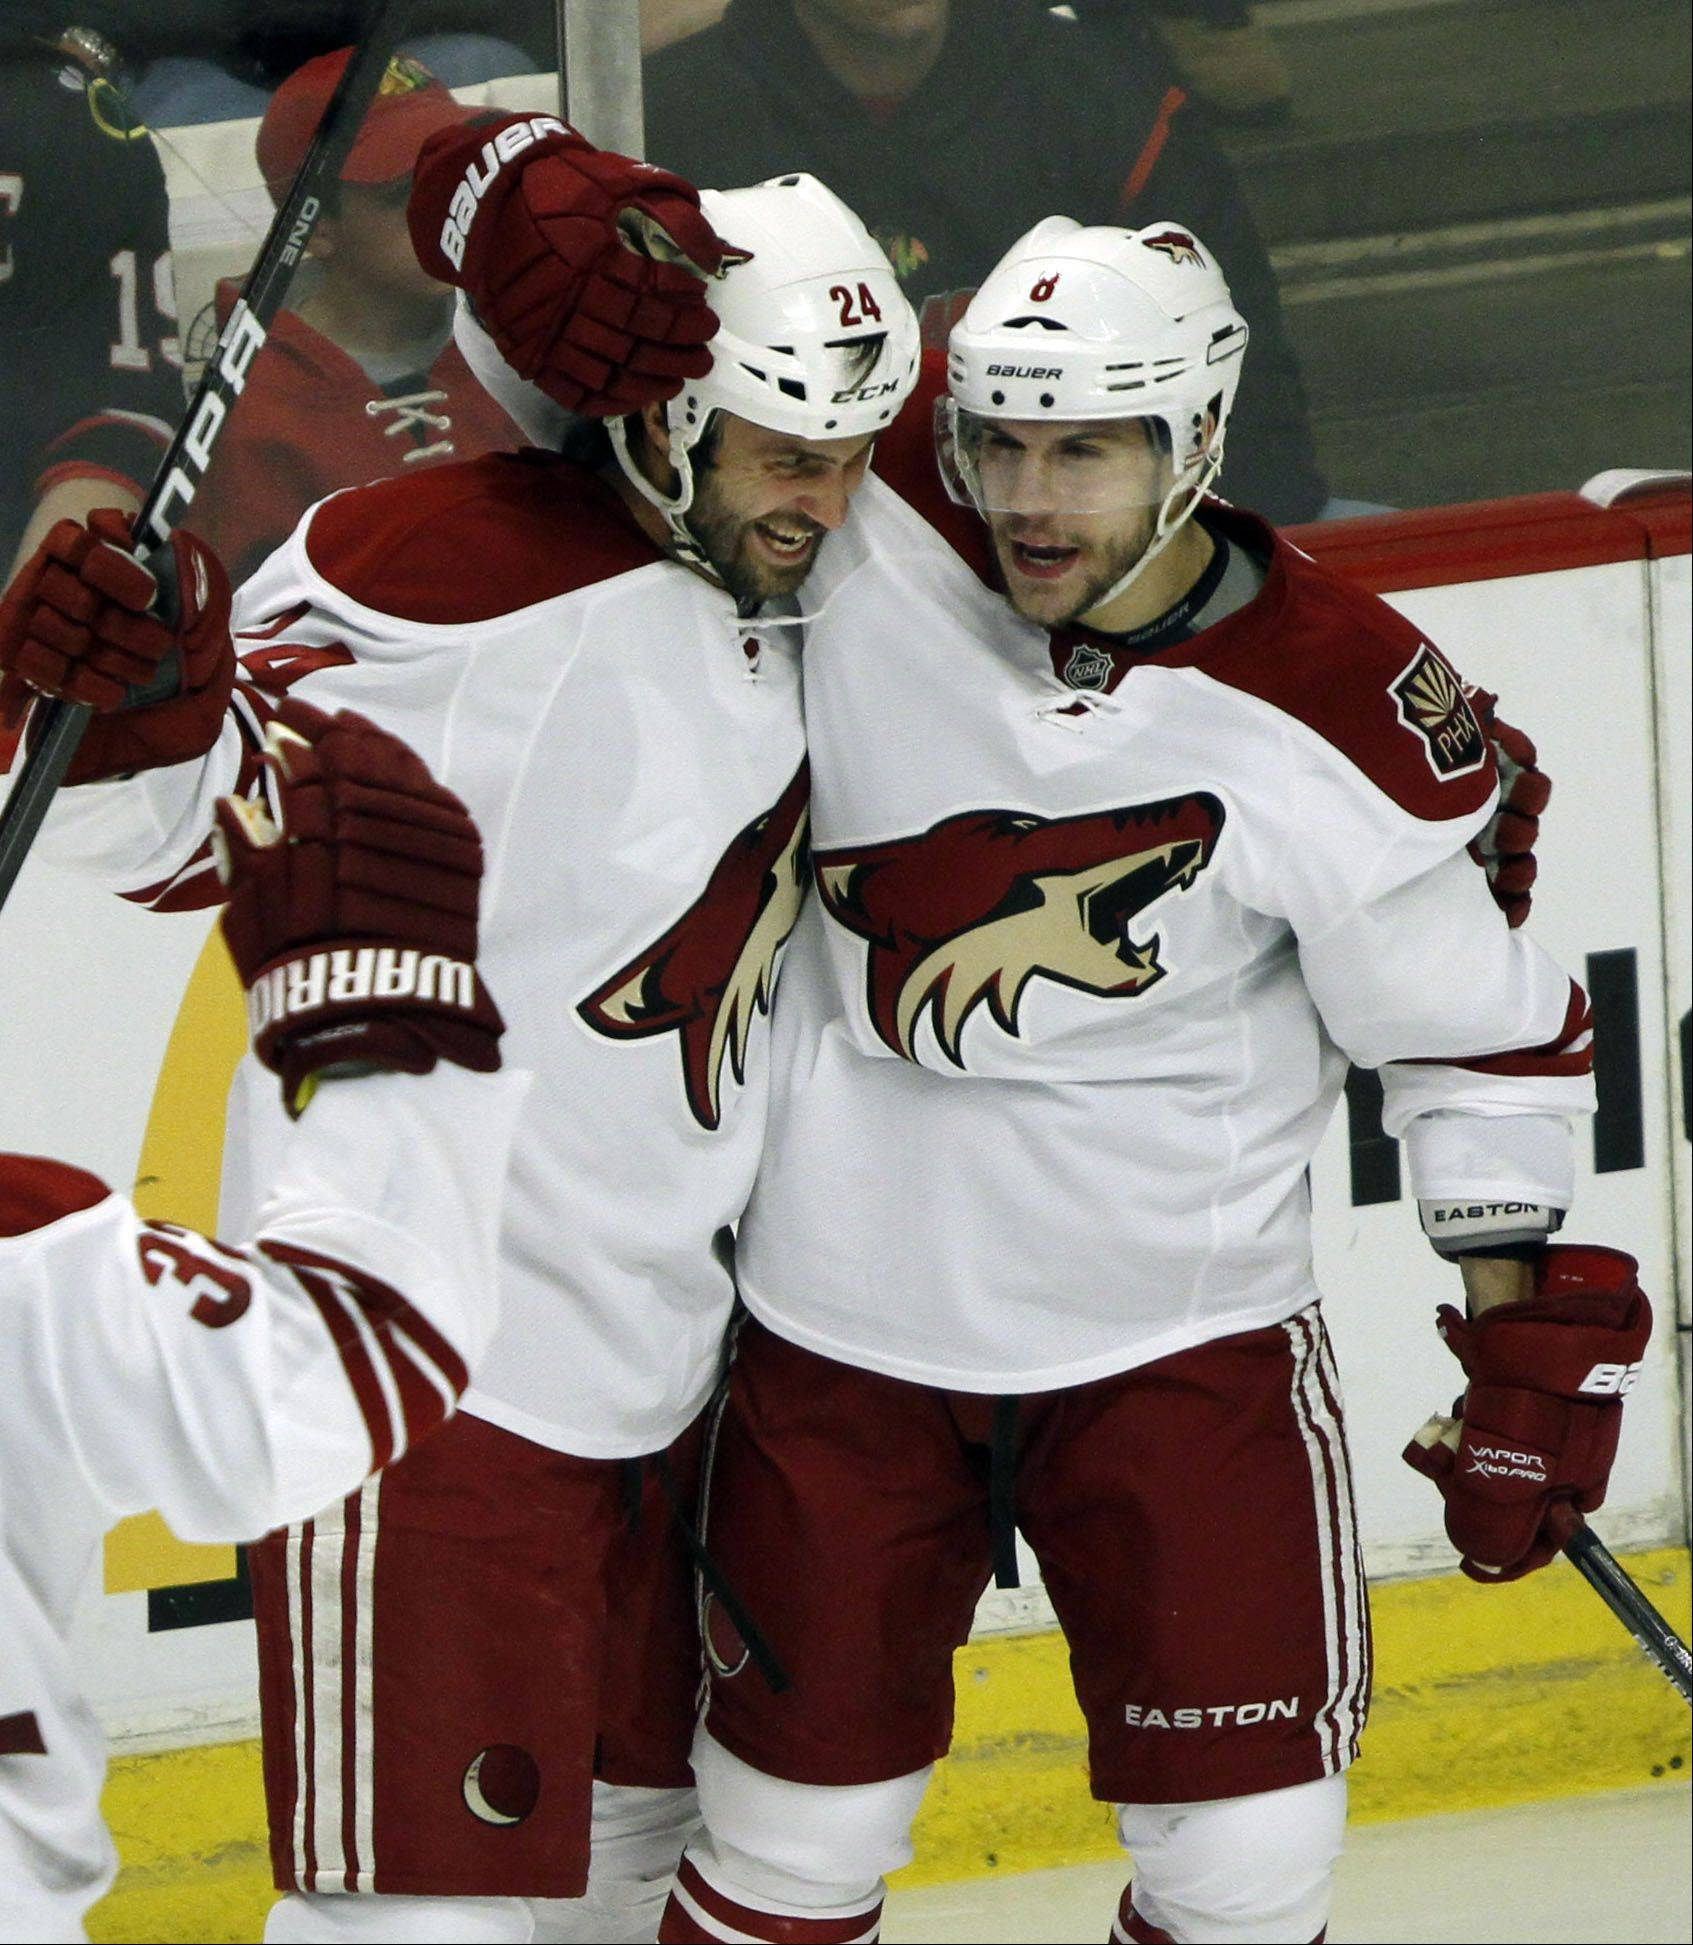 Phoenix Coyotes' center Kyle Chipchura and Phoenix Coyotes center Gilbert Brule celebrate.